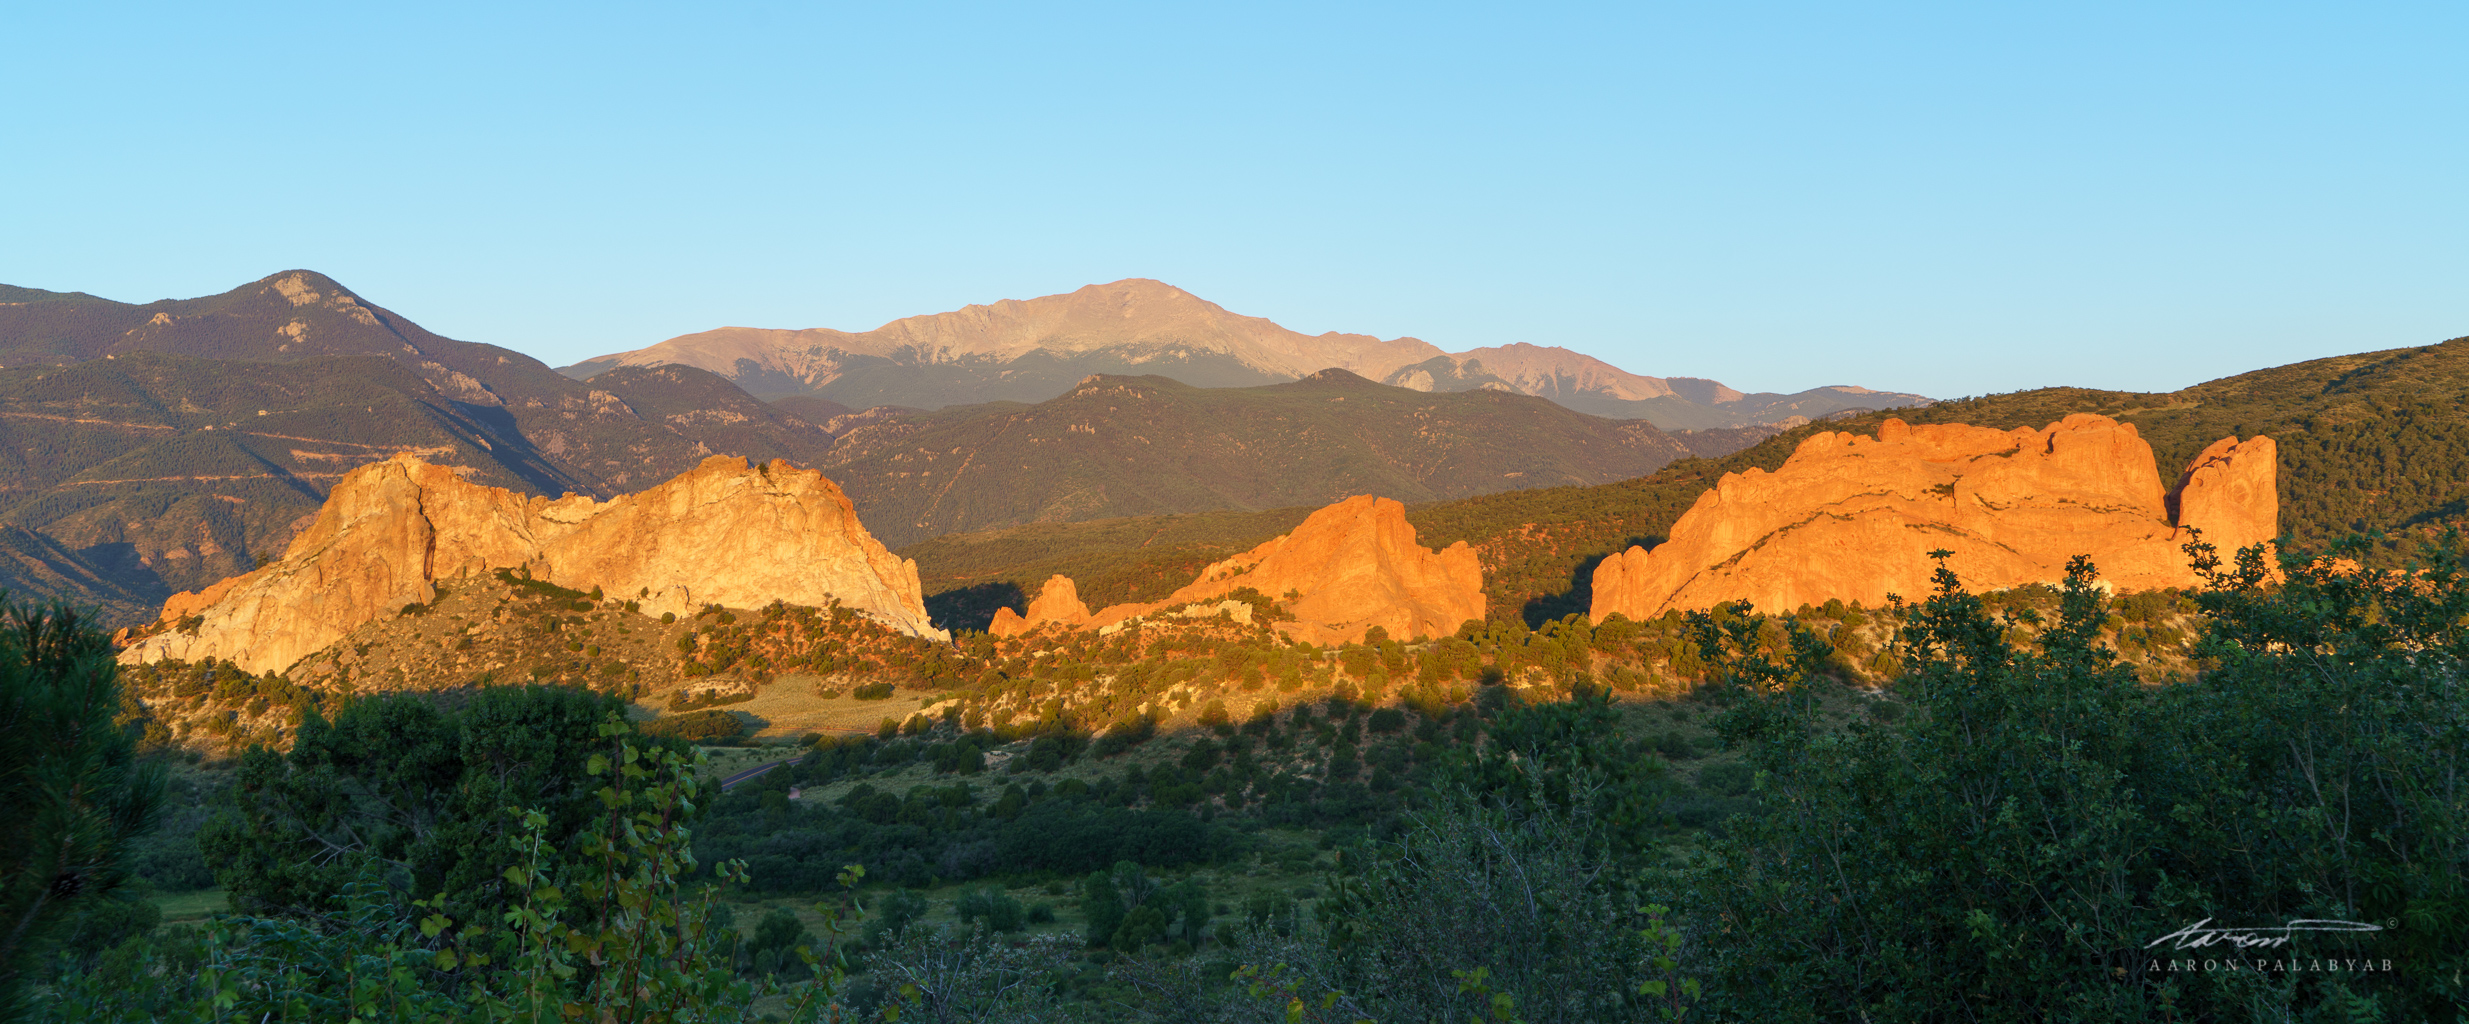 The morning light makes these monumental rocks in the shadow of Pike's Peak come alive